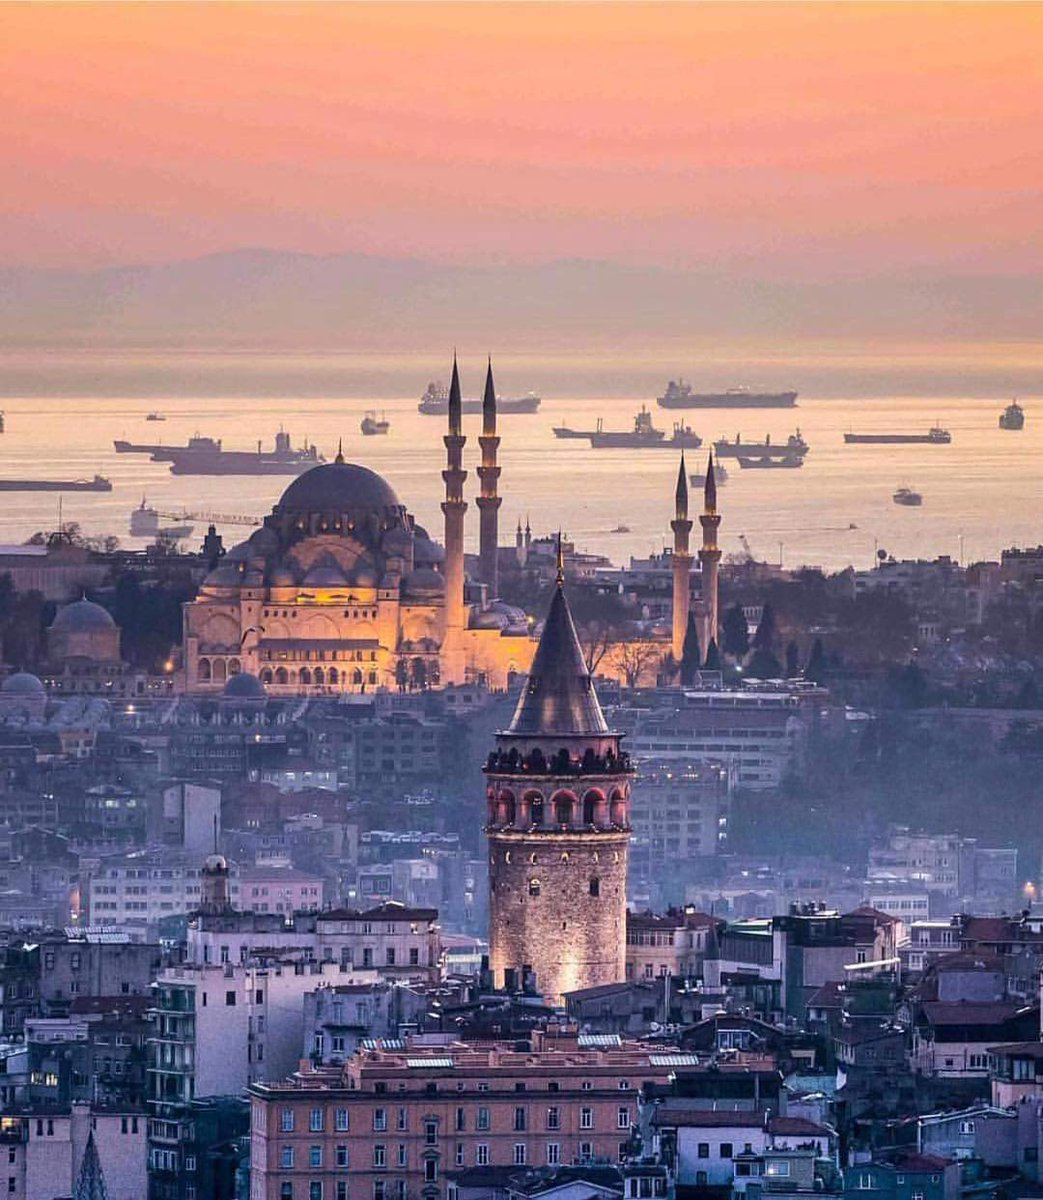 Istanbul: An İmperial Beauty ...  <br>http://pic.twitter.com/OYGFUDkaMB